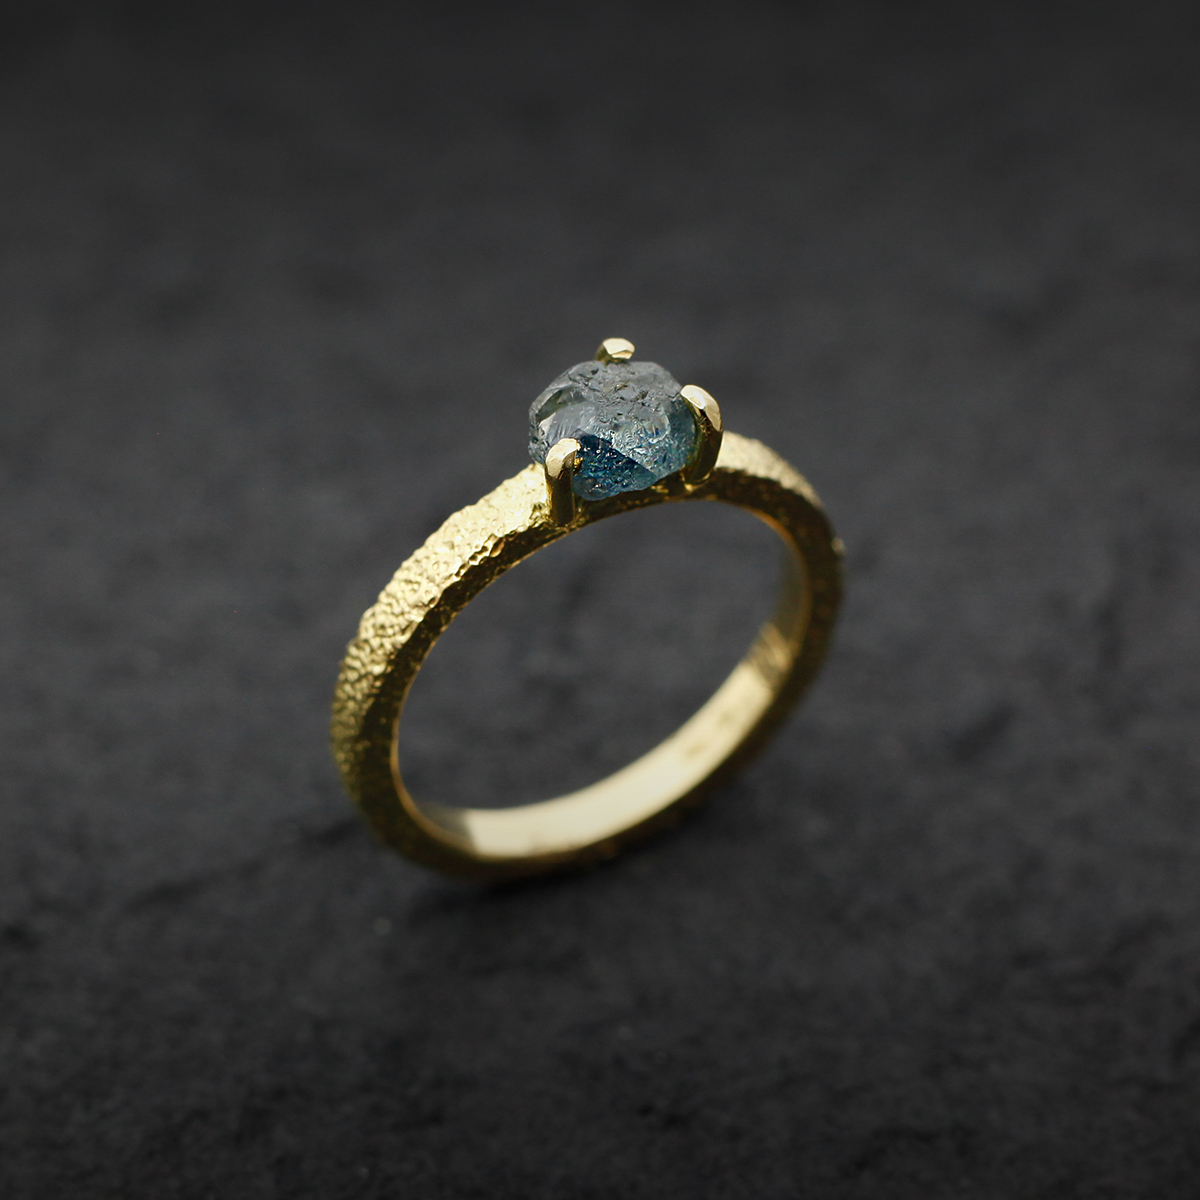 Yellow gold engagement ring with a rough sapphire in a solitaire.